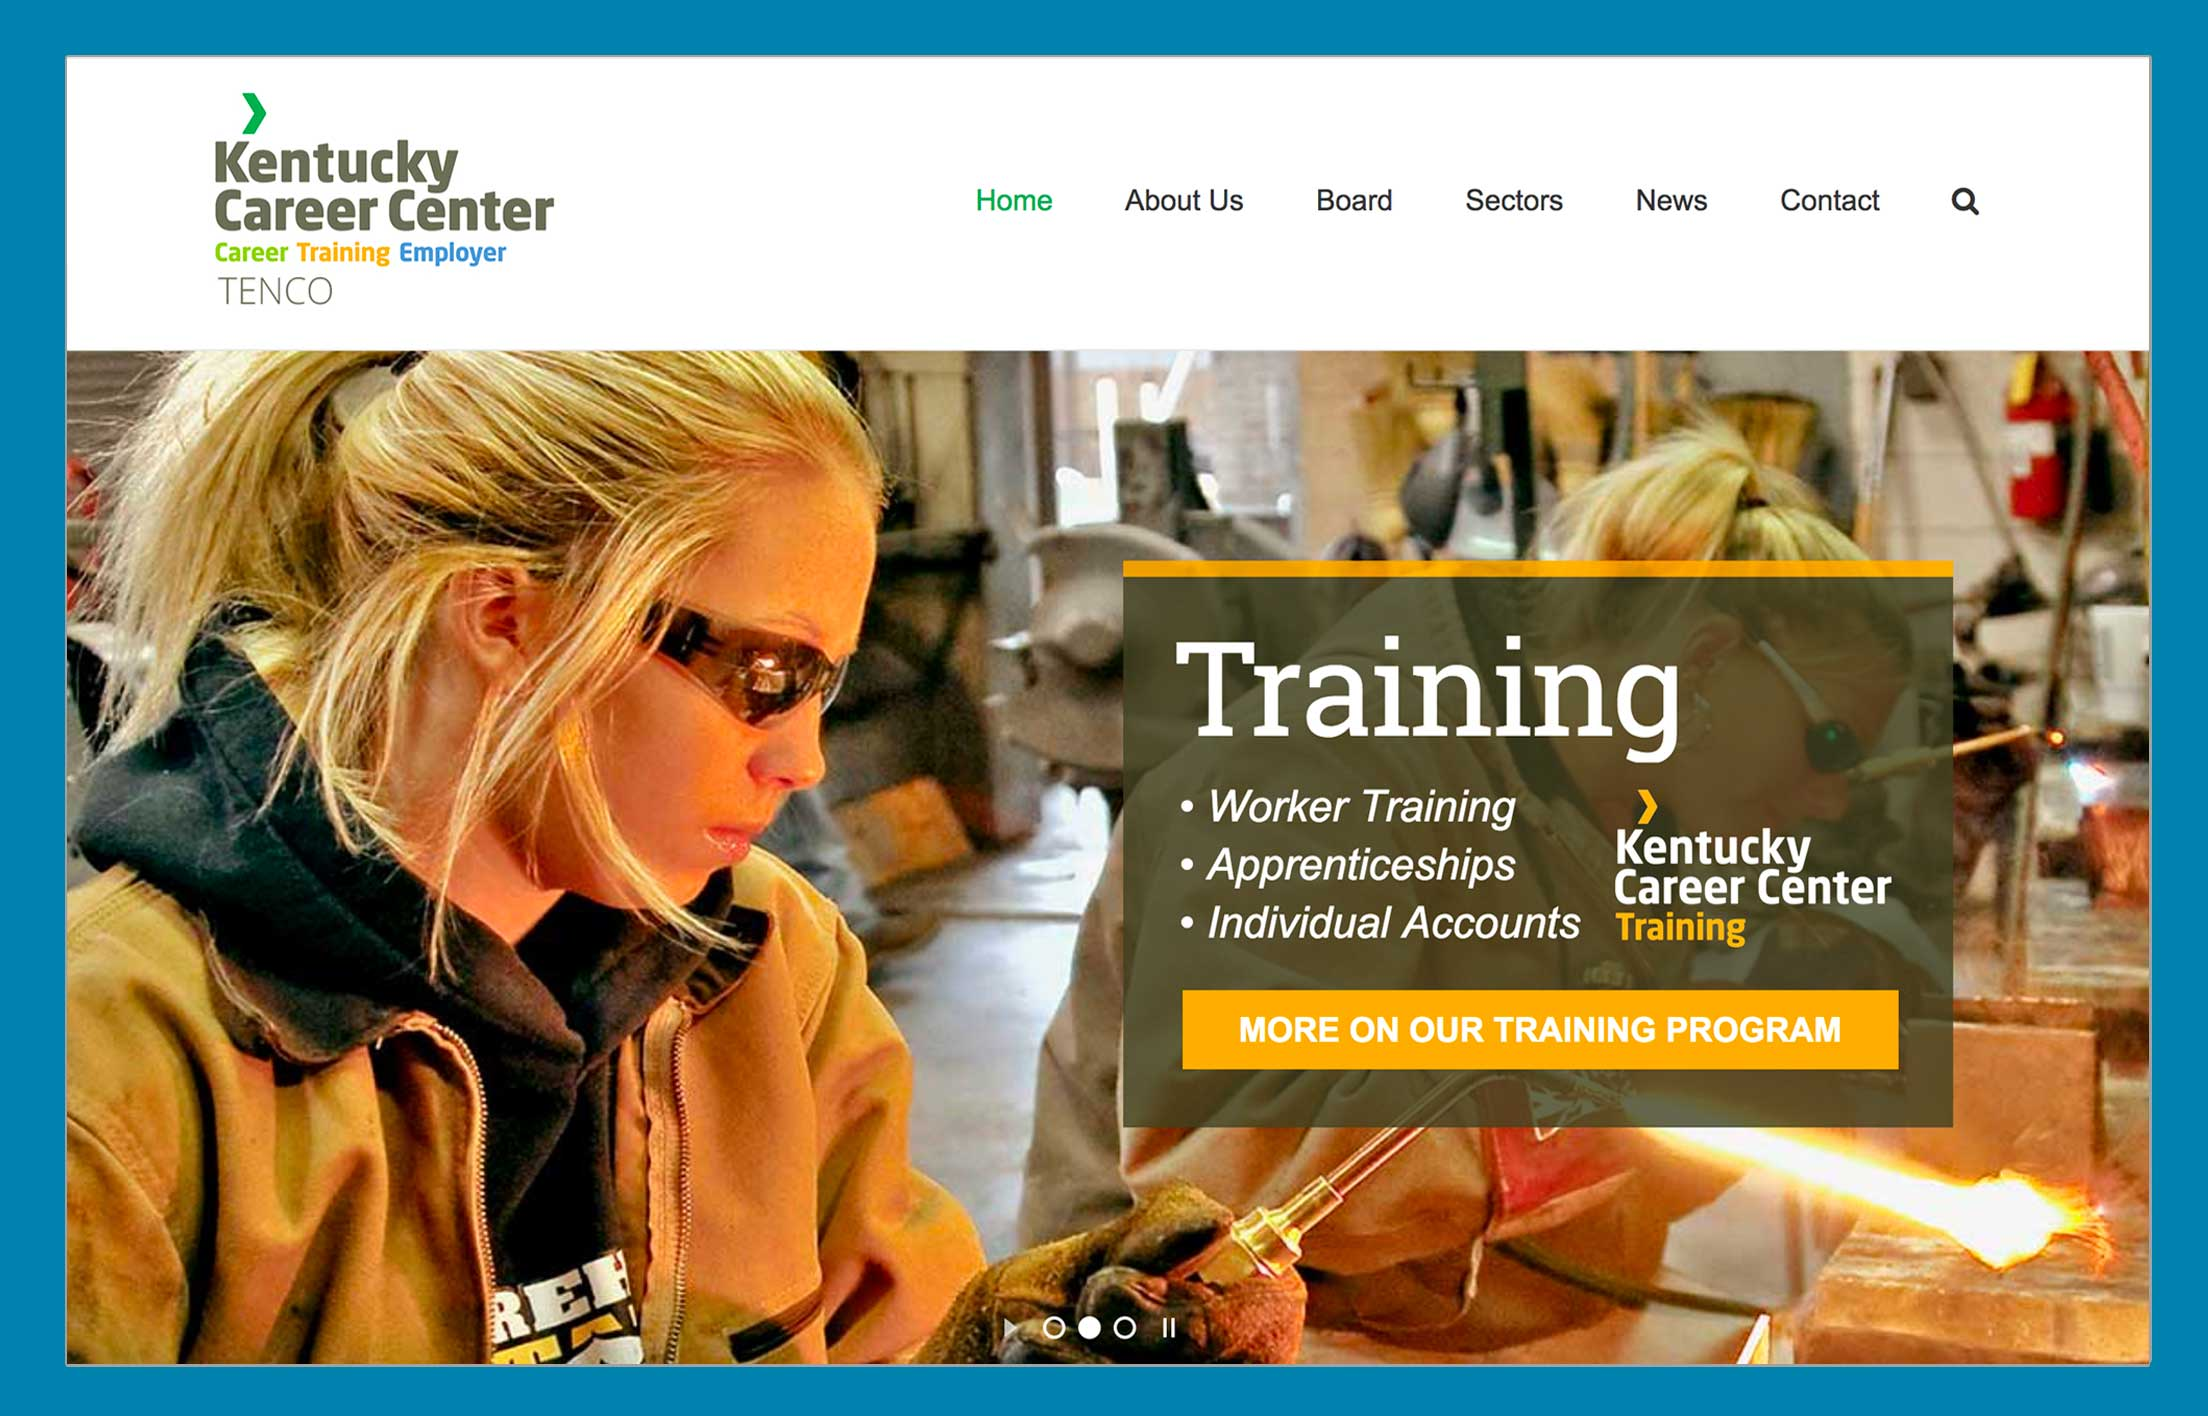 Kentucky Career Center - TENCO